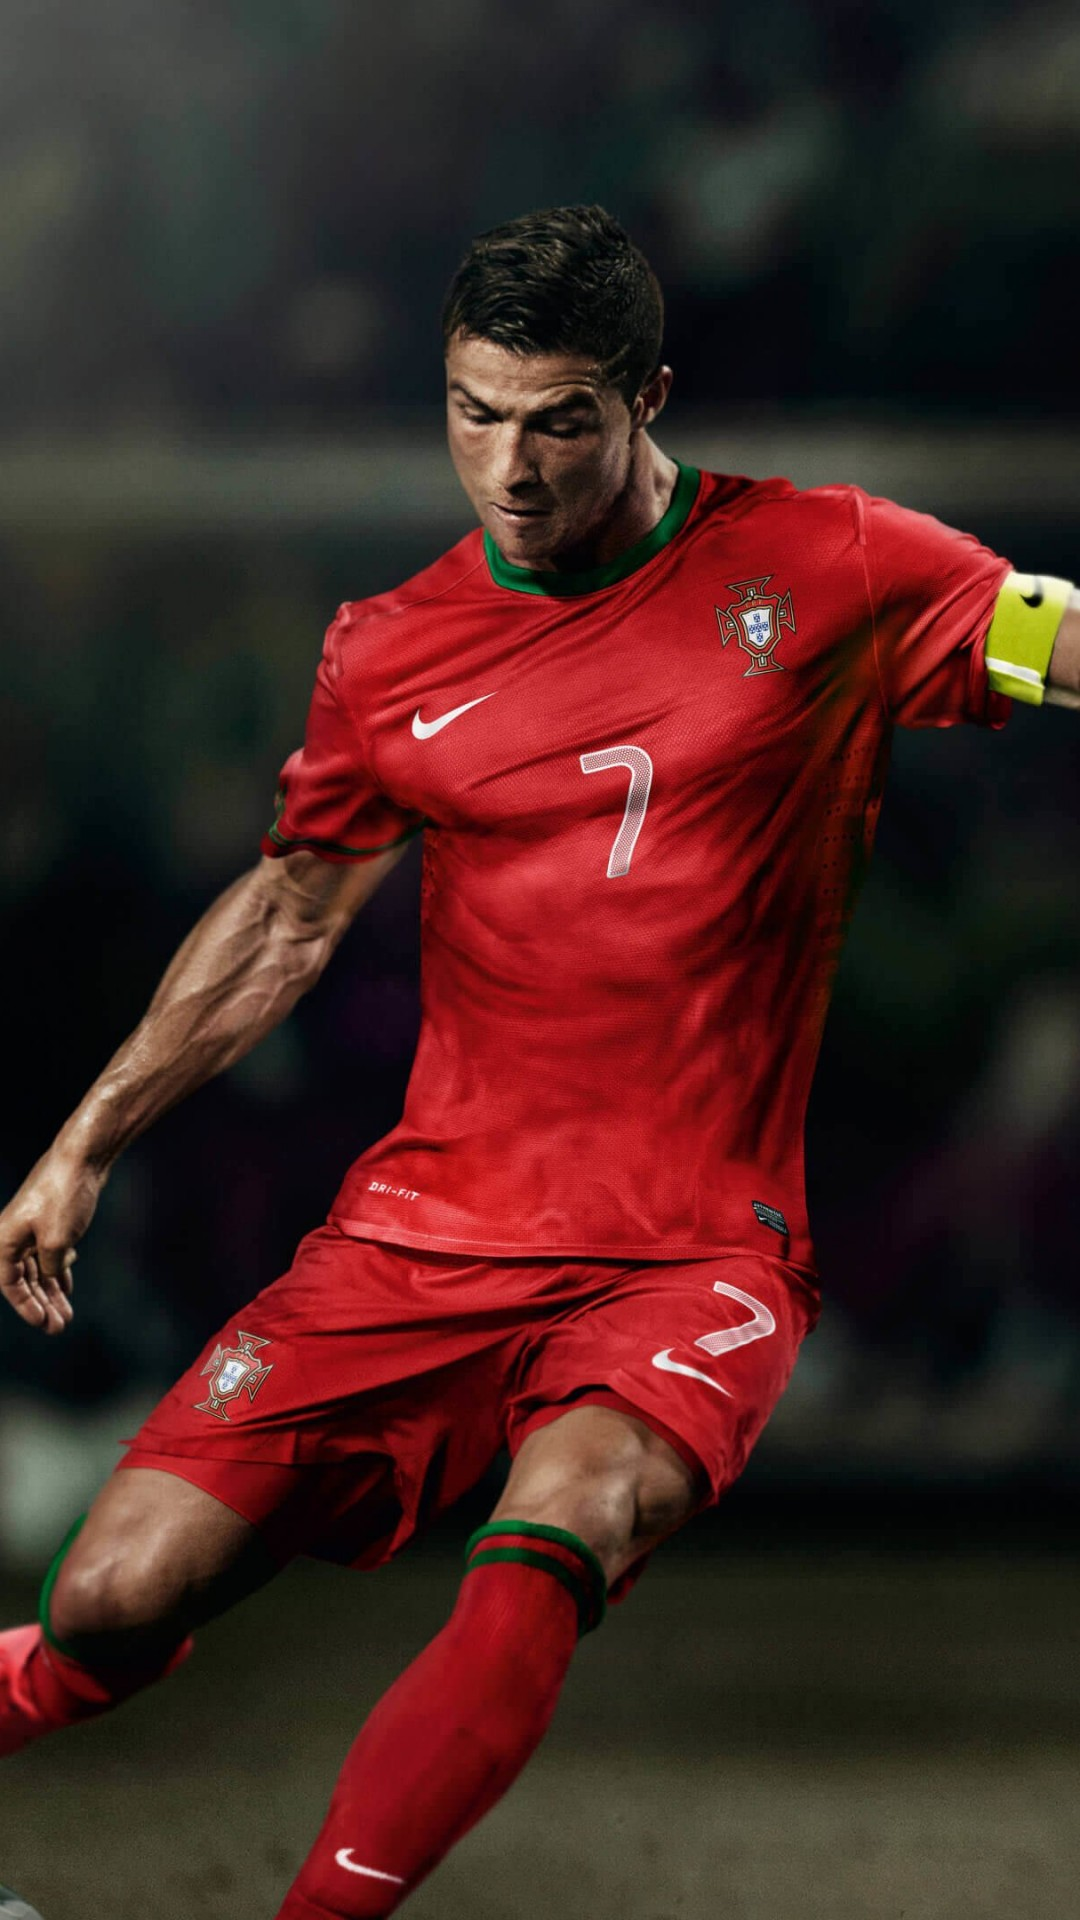 Cristiano Ronaldo In Portugal Jersey Wallpaper for SAMSUNG Galaxy S5